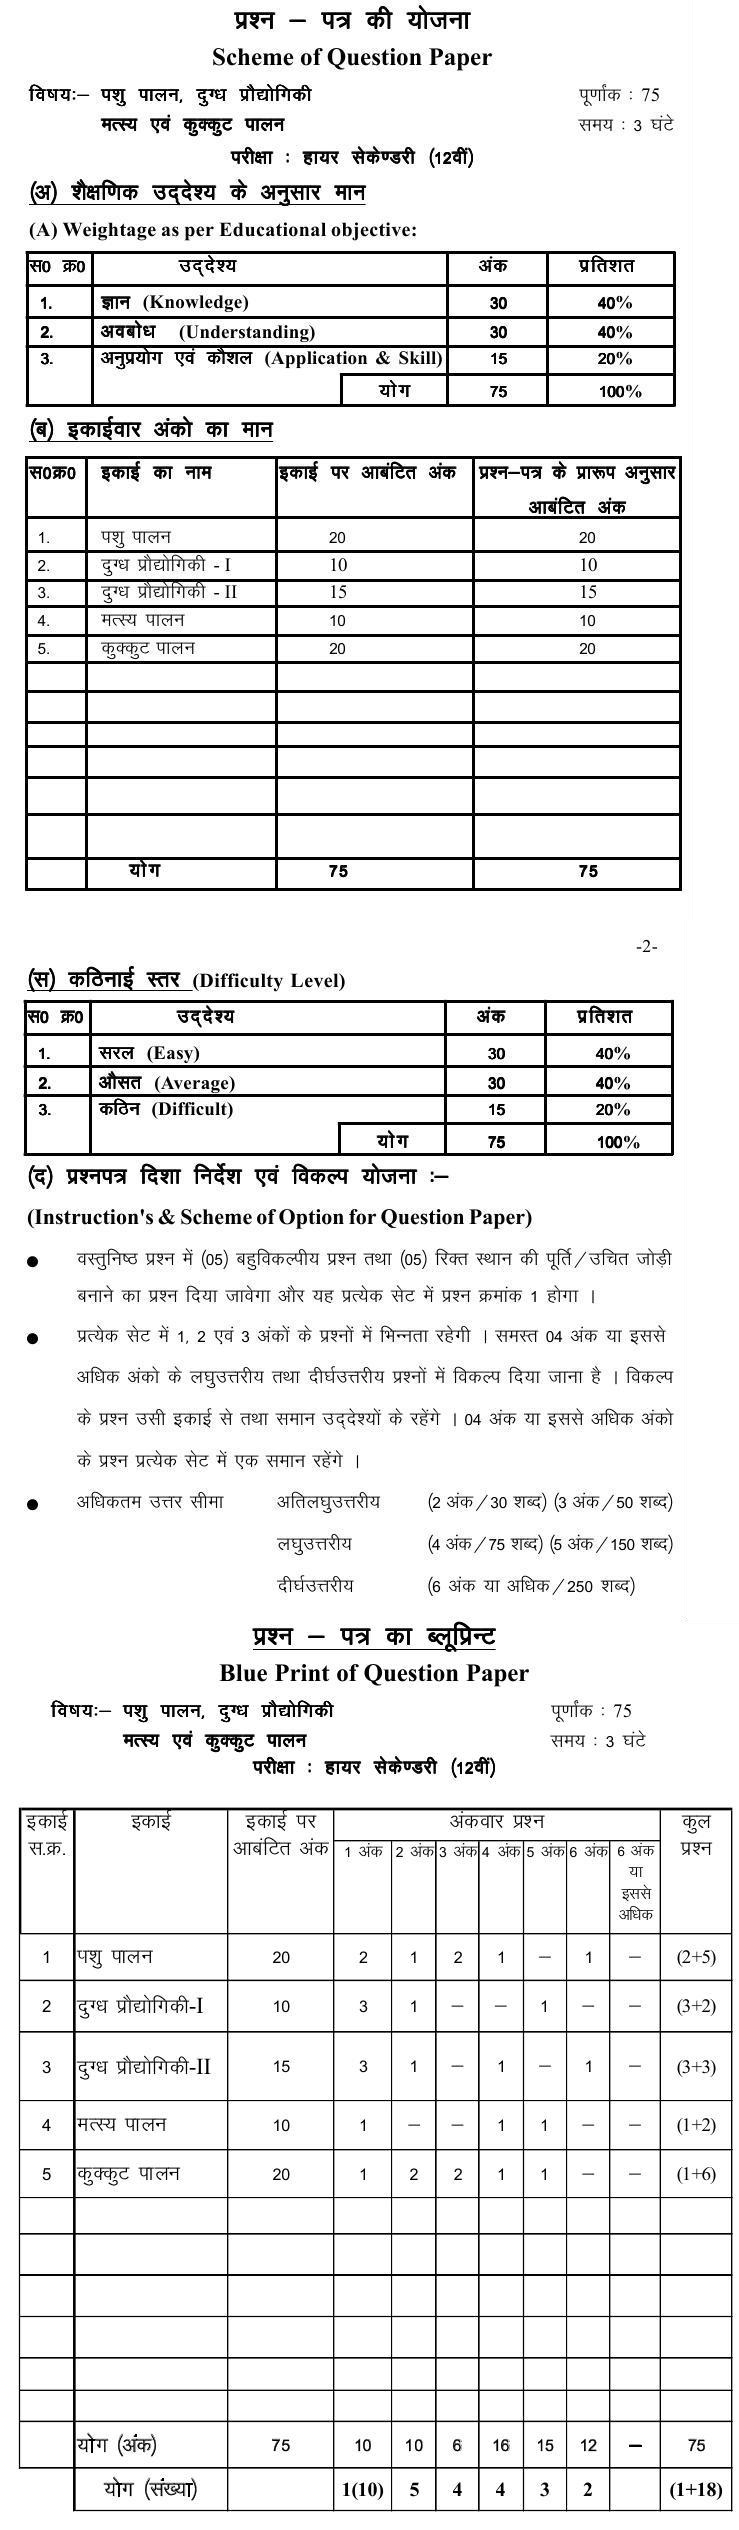 Chattisgarh Board Class 12 Scheme and Blue Print of Animal husbandry, Dairy farming, Fish and Poultry